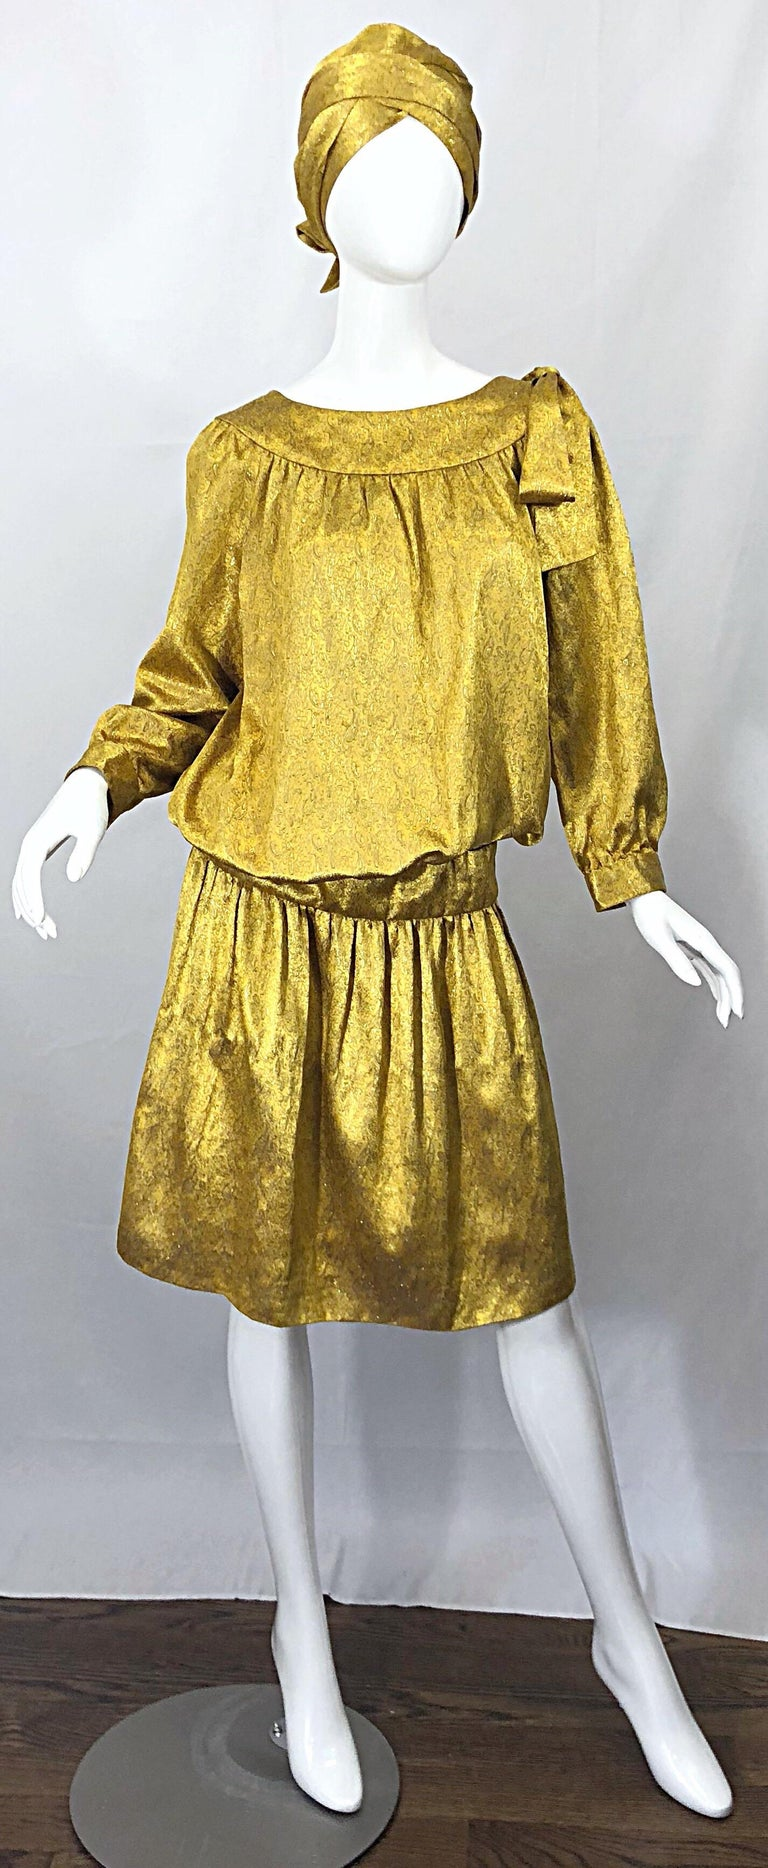 Vintage Brioni Yellow + Gold Silk 1920s Style Drop Waist Dress + Turban Sash For Sale 10